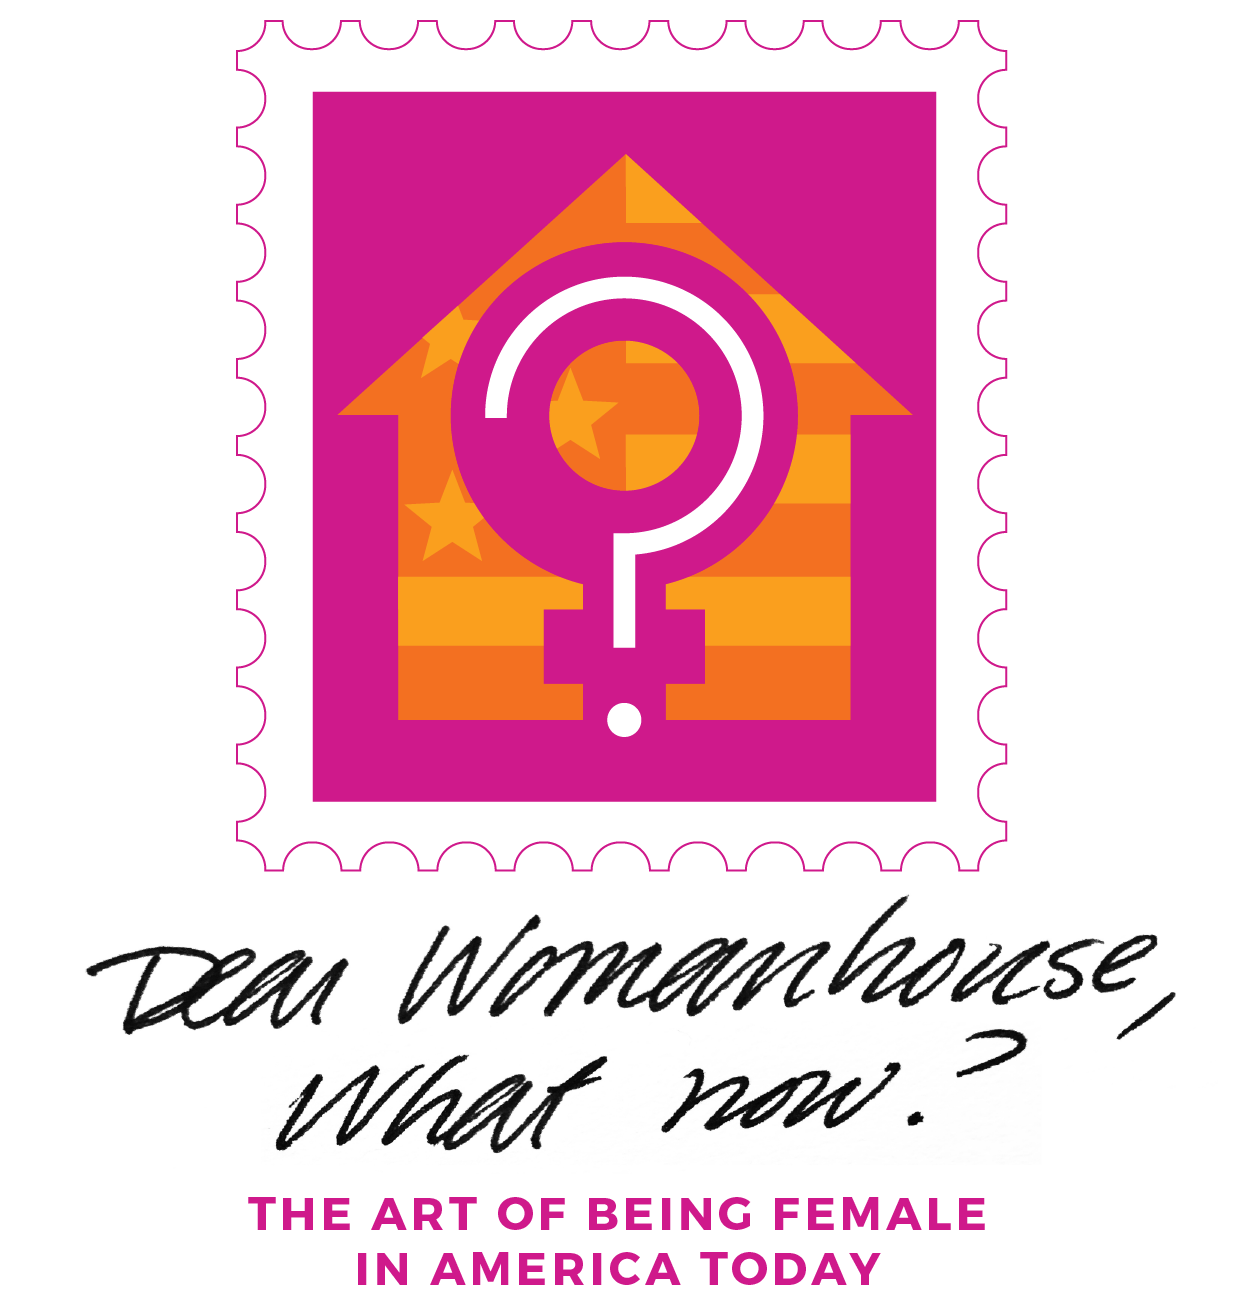 Dear Womanhouse